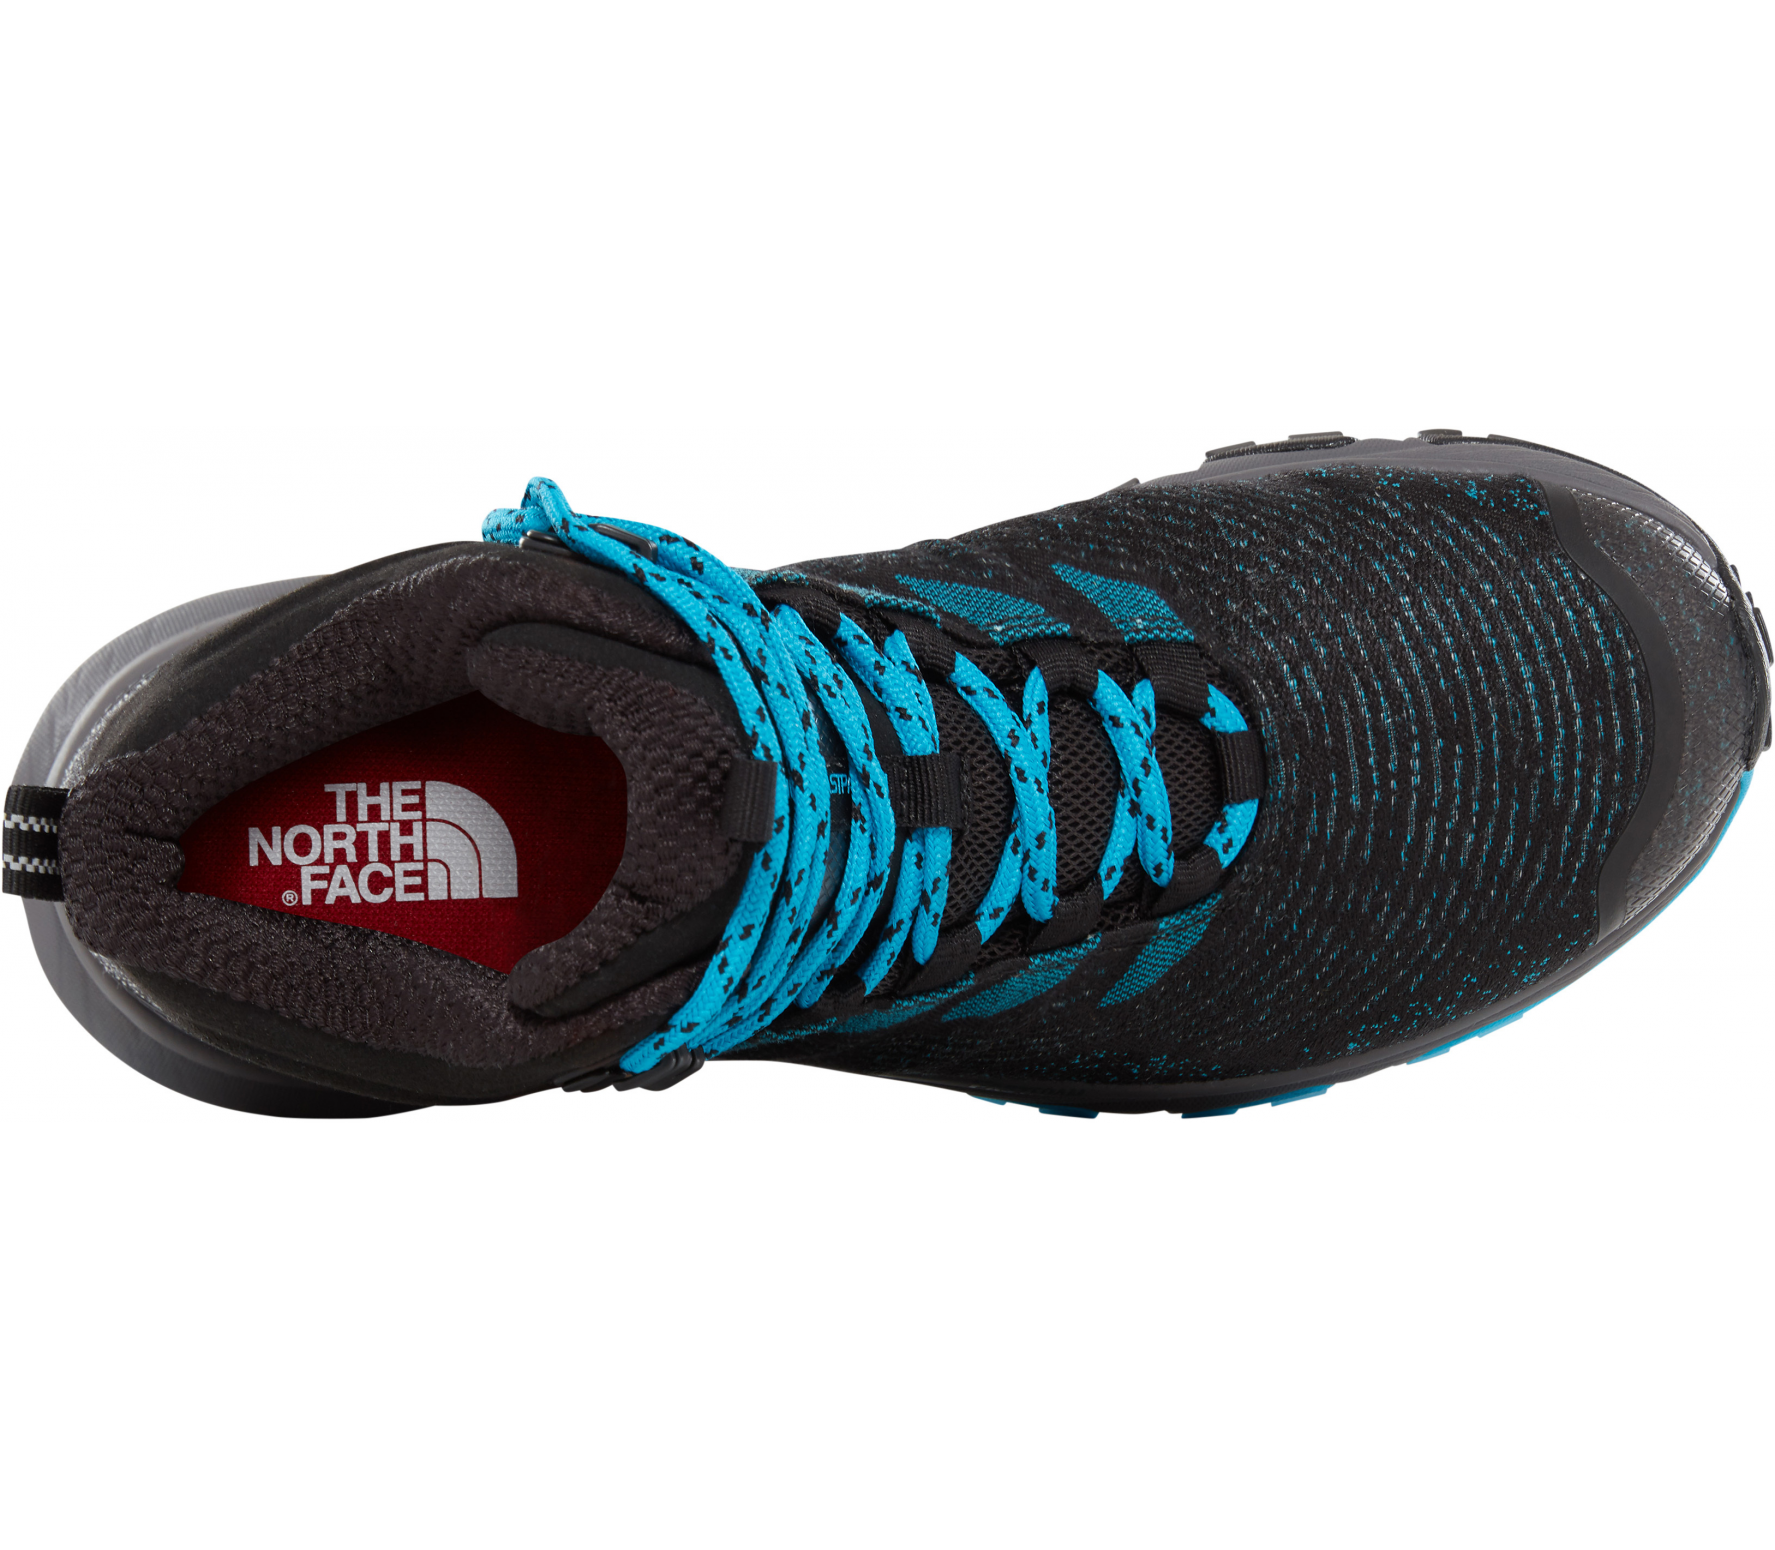 d8a9075f2564 The North Face - Ultra Fastpack III Mid GTX (Woven) women s hiking shoes (